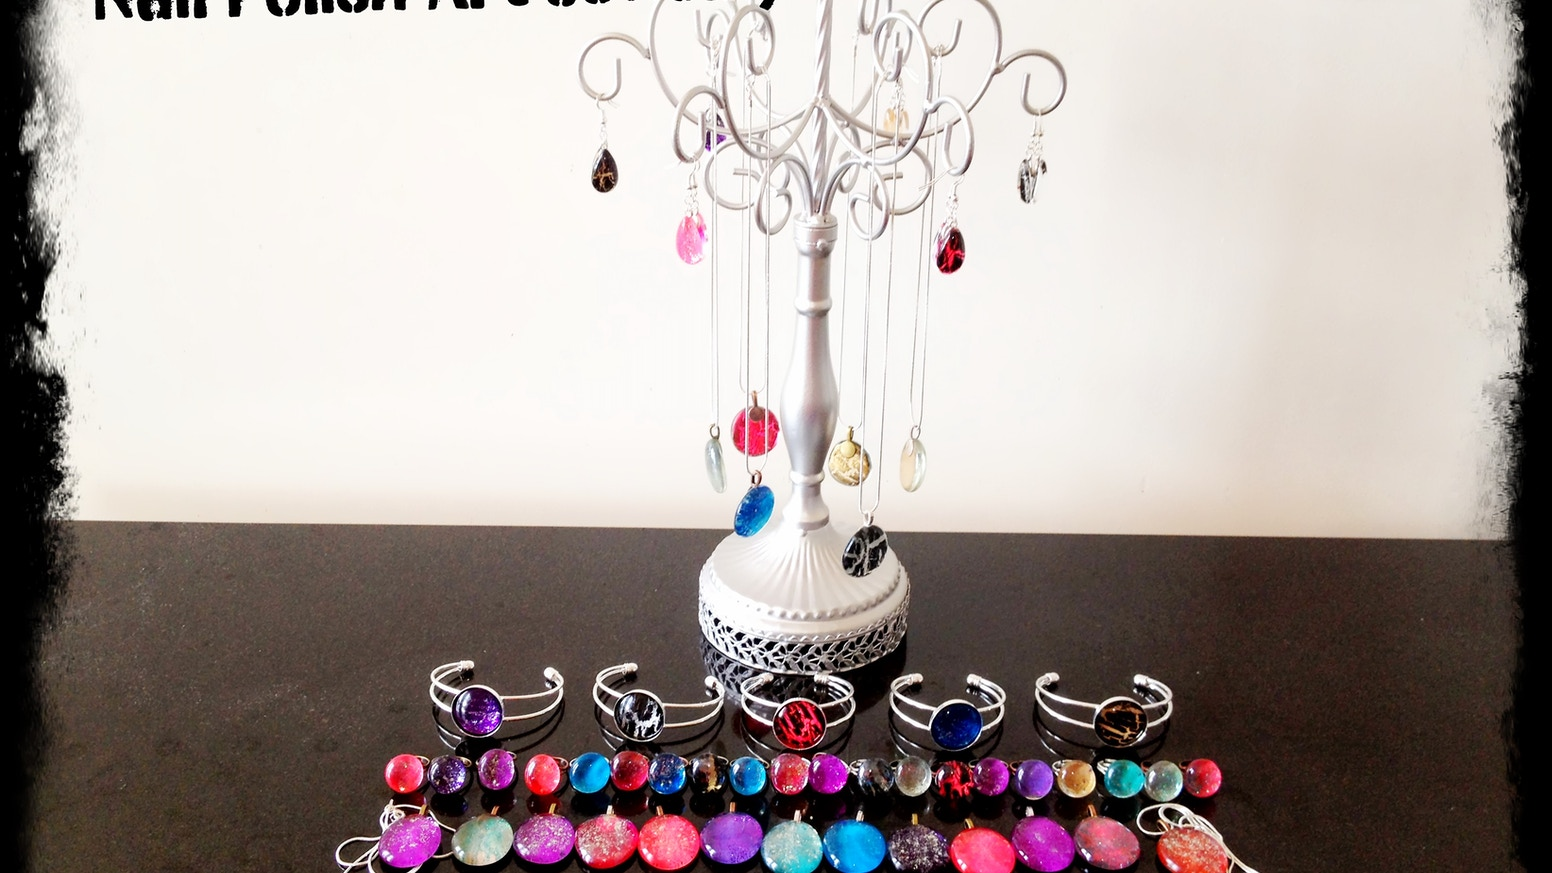 Nail Polish Art Jewelry (Part 1) by Prism NYC LLC — Kickstarter